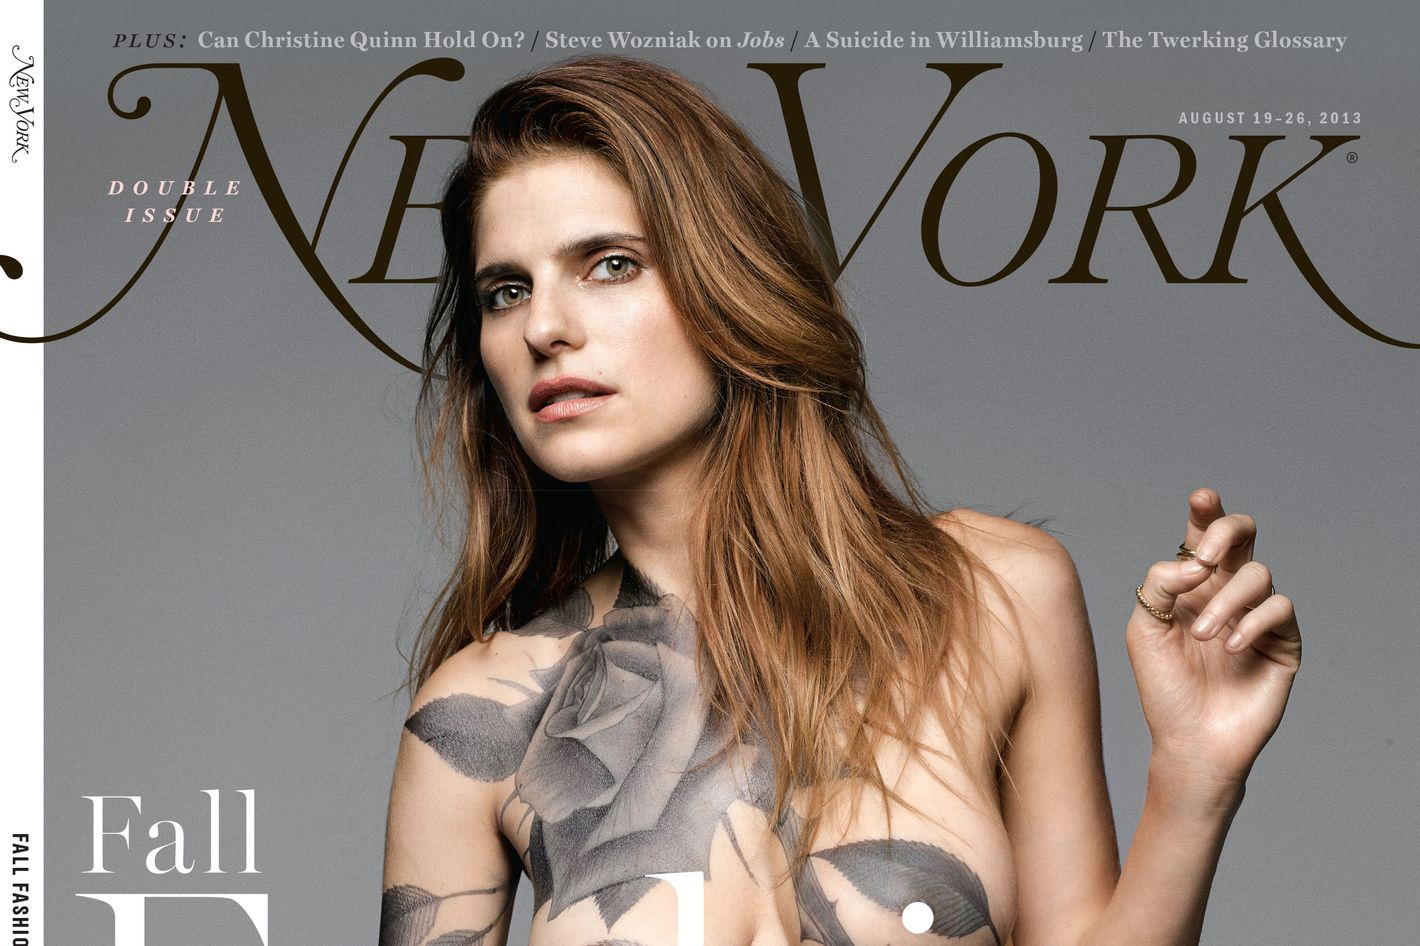 New York' Fashion Issue Cover Preview: Lake Bell Wears a Tattoo